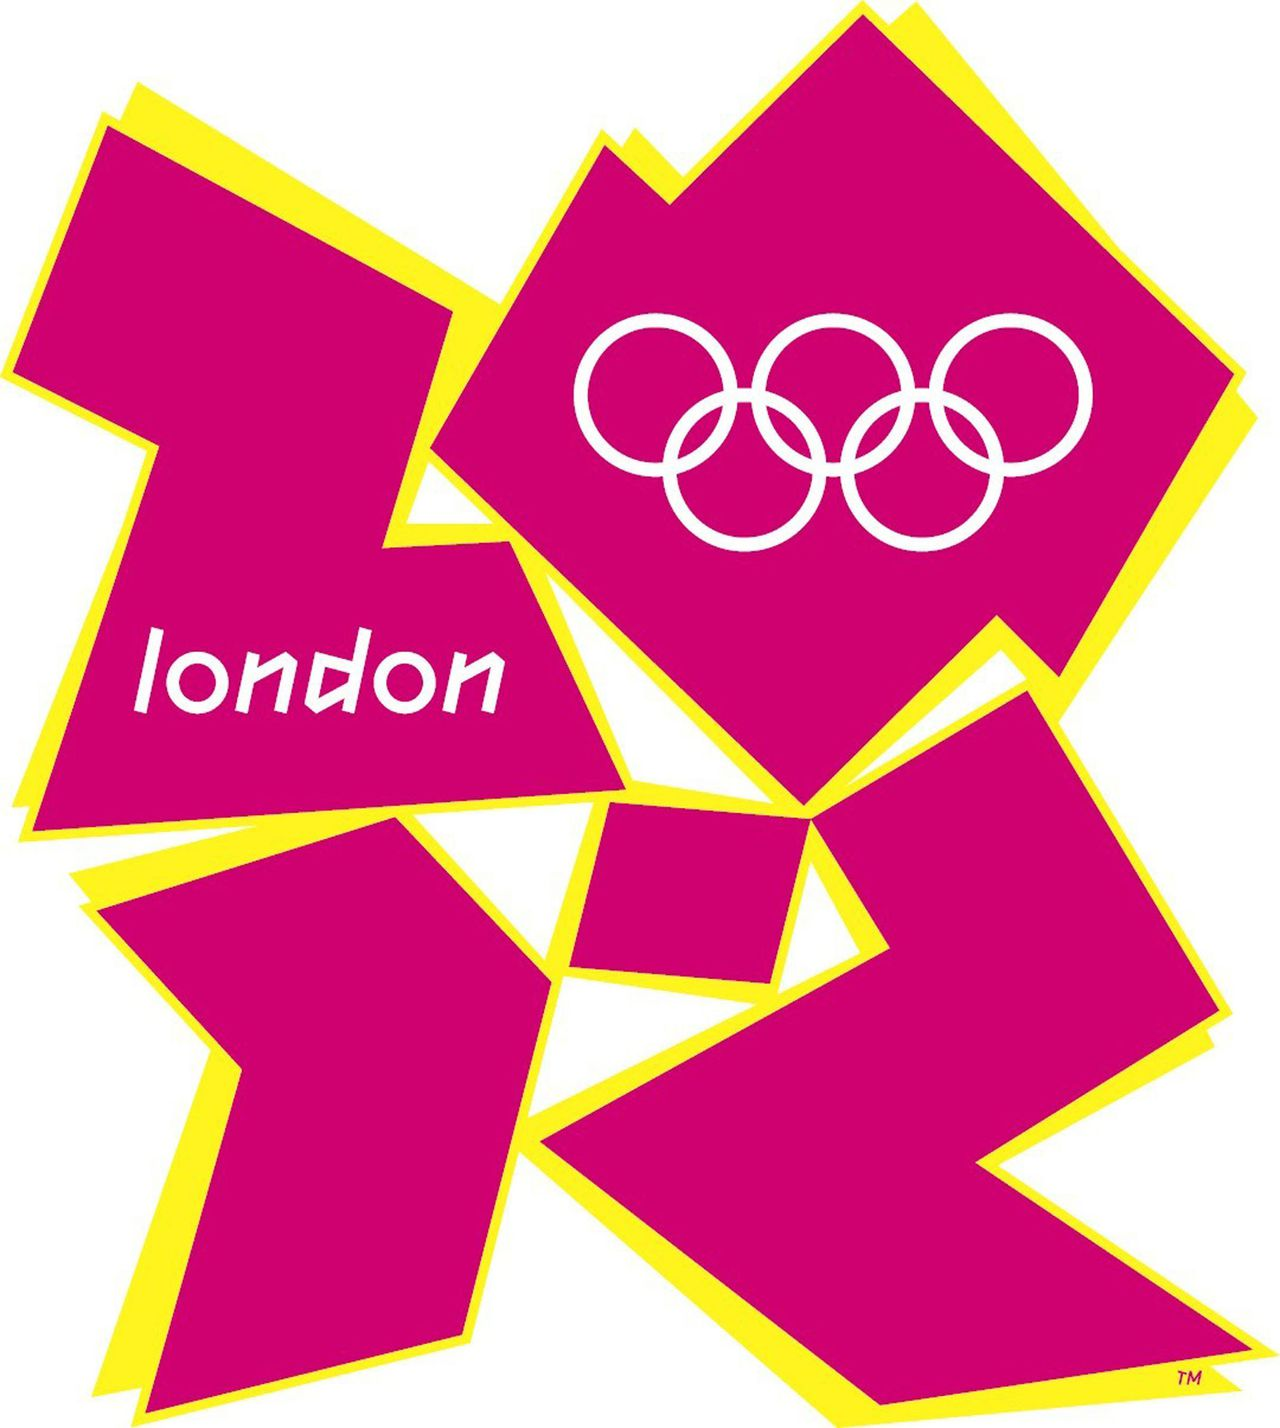 "FILE - This June 4, 2007 file photo issued by PRNewswire, London, shows the 2012 Olympic Games logo. Iran objects to the logo for the 2012 London Olympics, contending it is racist because it resembles the word ""Zion"" and warning of a possible boycott of the games. The secretary general of Iran's National Olympic Committee said Iran sent a letter to International Olympic Committee President Jacques Rogge. The letter claims the 2012 logo spells out ""Zion,"" a biblical term widely recognized to refer to the city of Jerusalem. In comments carried by the official IRNA news agency Monday Feb. 28, 2011, secretary general Bahram Afsharzadeh said the letter urges other Muslim states to oppose the ""racist logo.""(AP Photo/PRNewsFoto/LONDON 2012, HO) EDITORIAL USE ONLY"